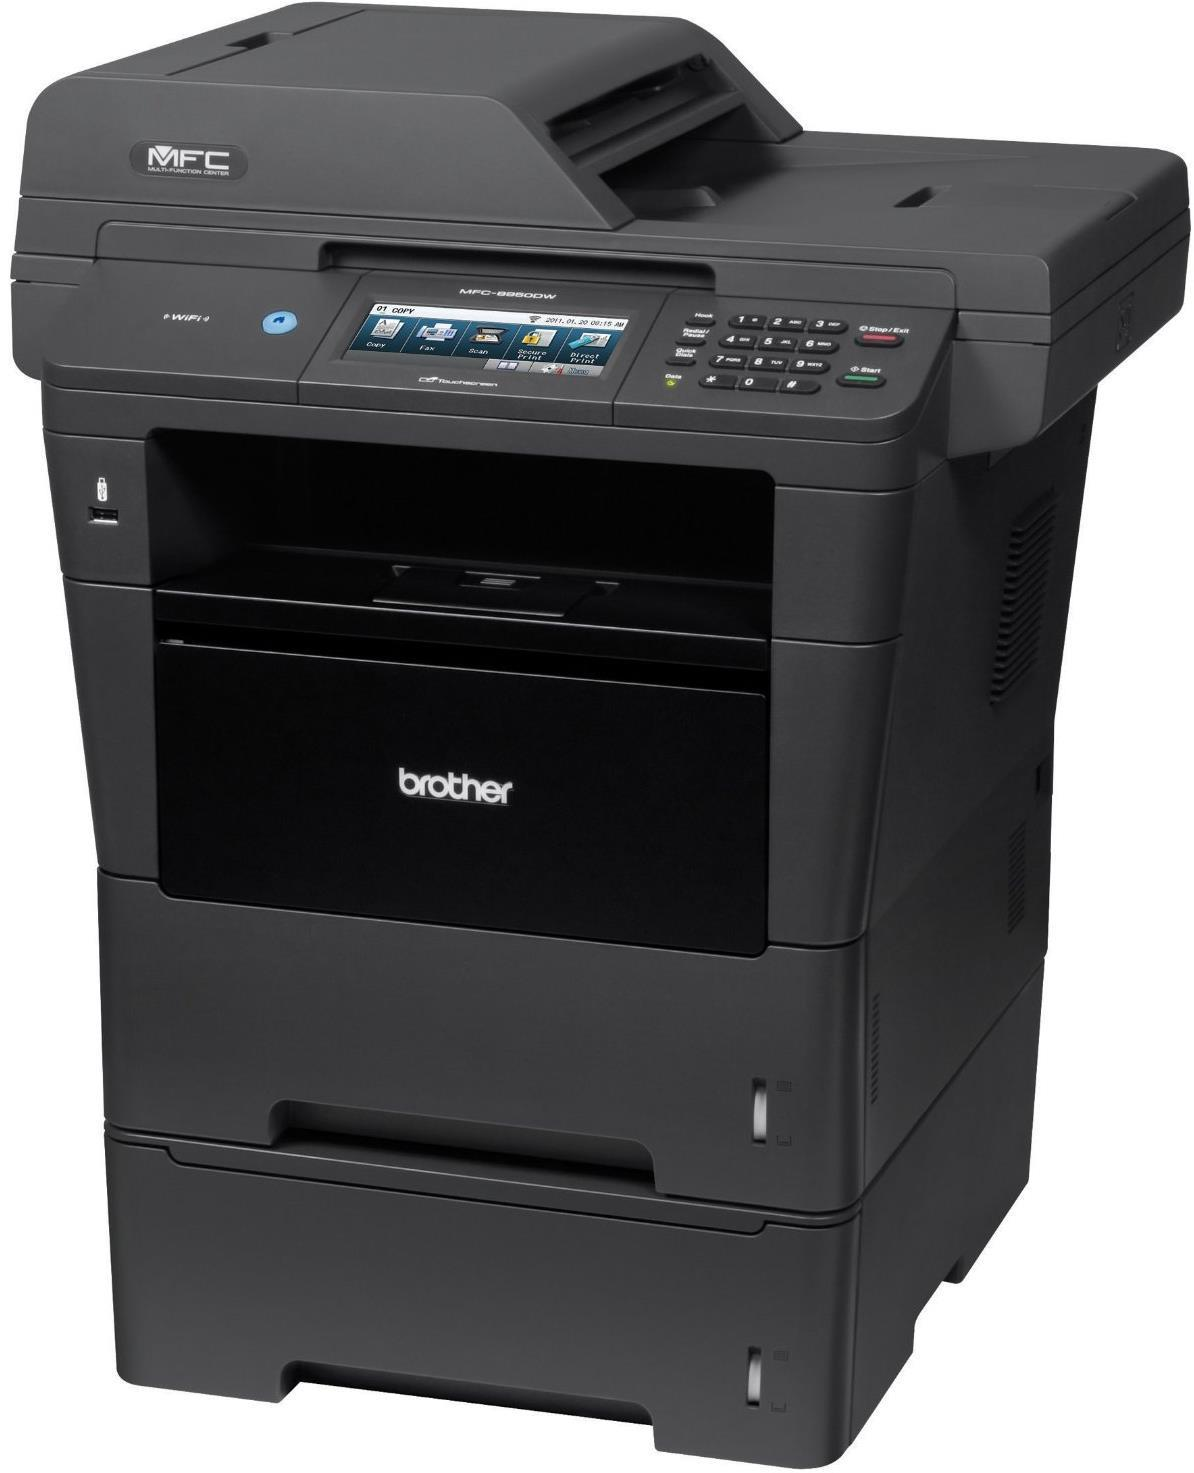 Brother MFC-8950Dwt Mono Multifunction Laser Printer With Lower Tray